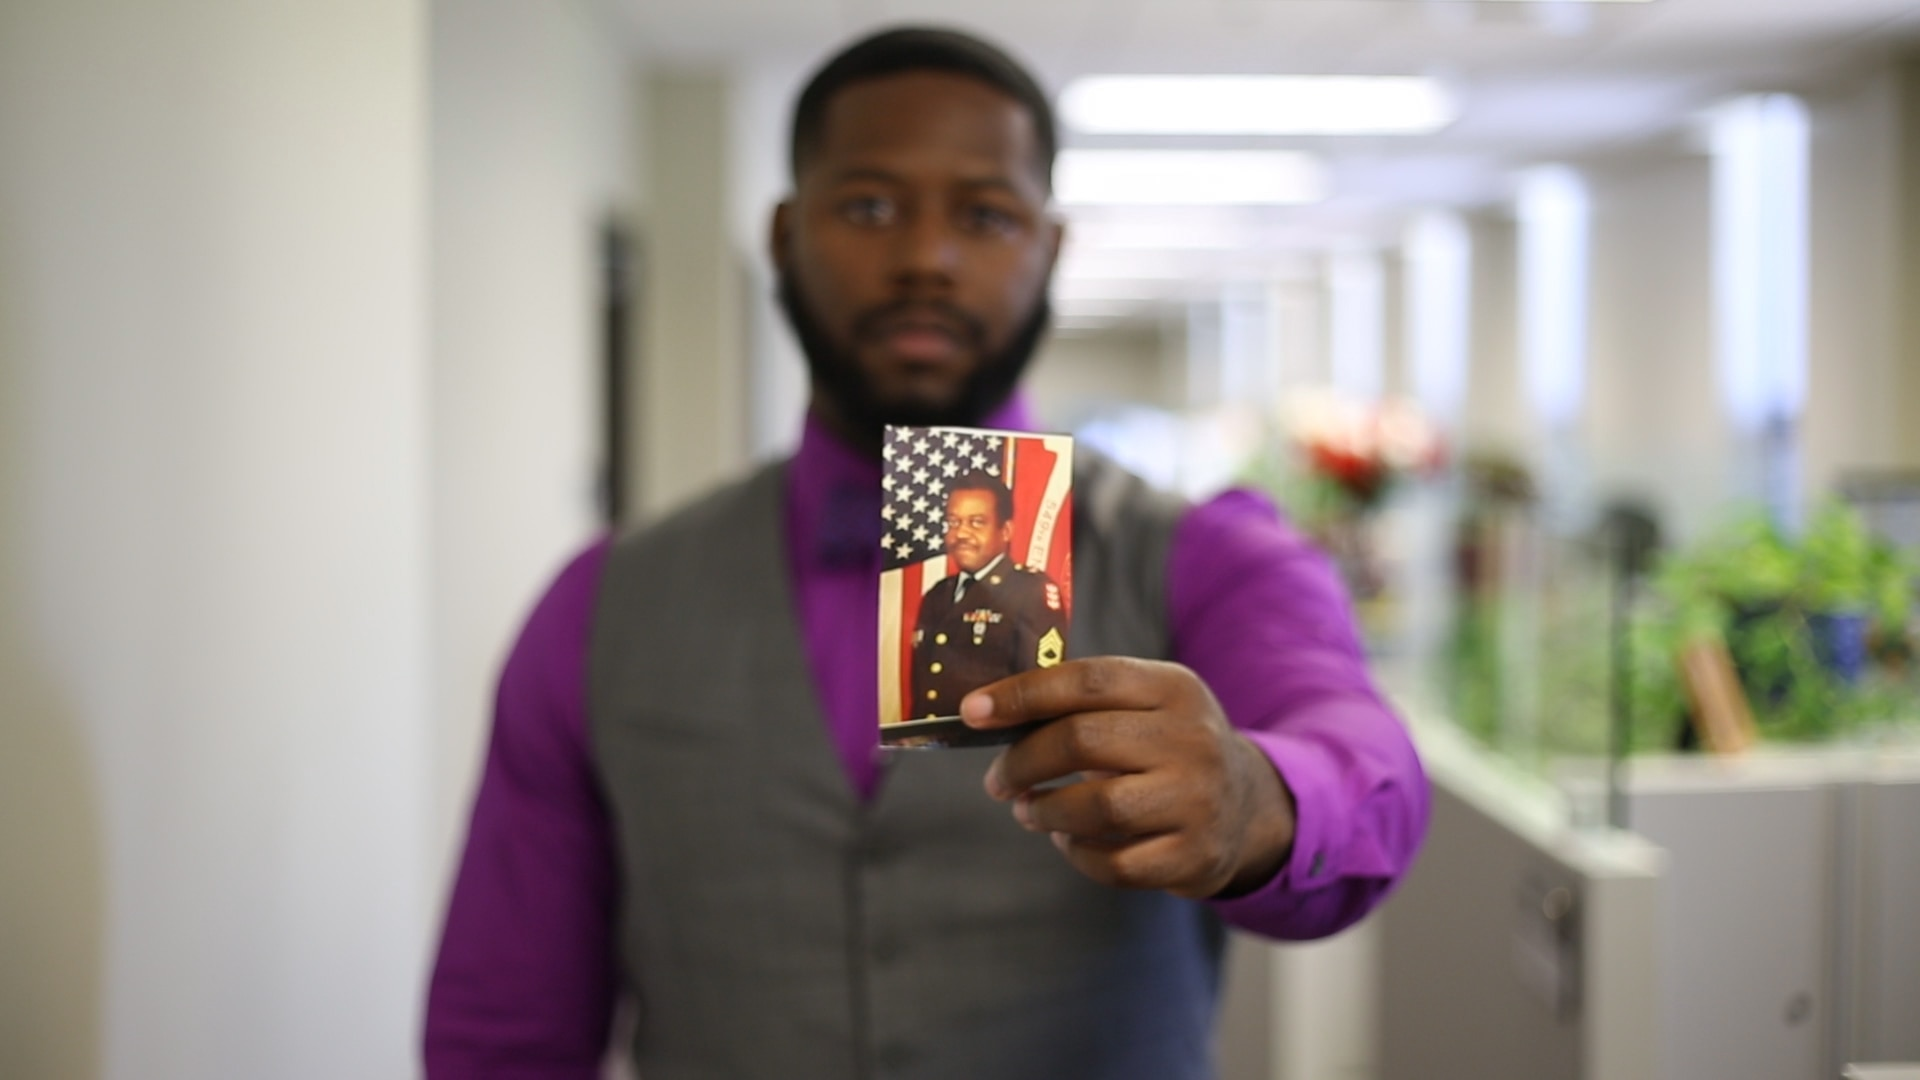 Man holds photo of another man in military uniform towards camera.